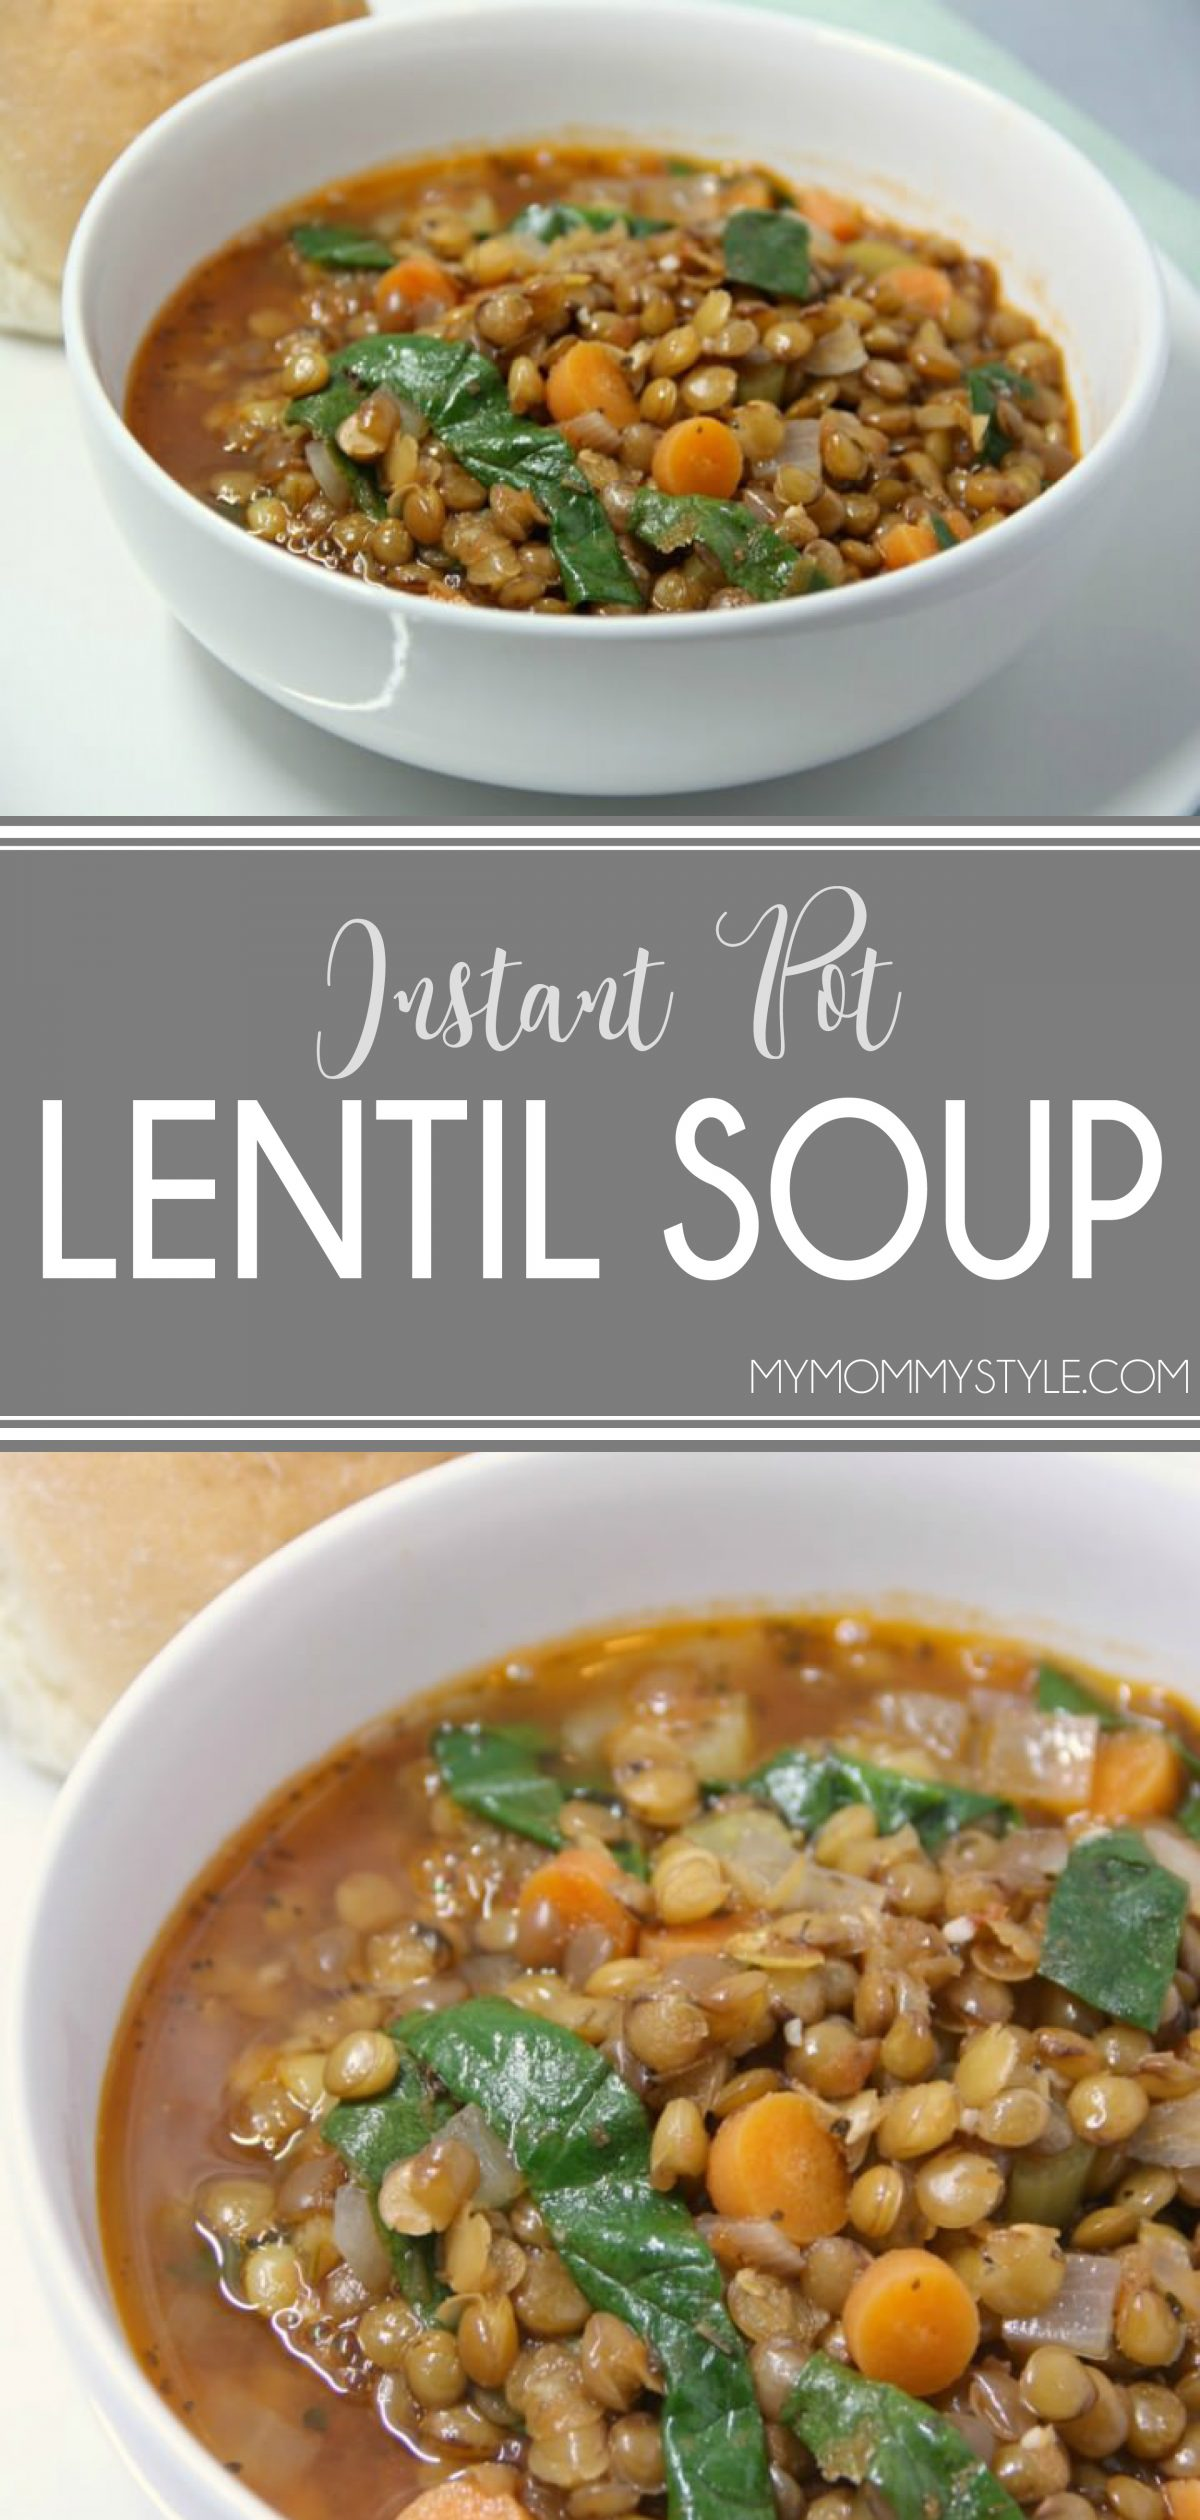 This recipe for Instant Pot Lentil Soup is amazing! The recipe was developed years ago and converted to be made in the Instant Pot for a quick weeknight meal. via @mymommystyle